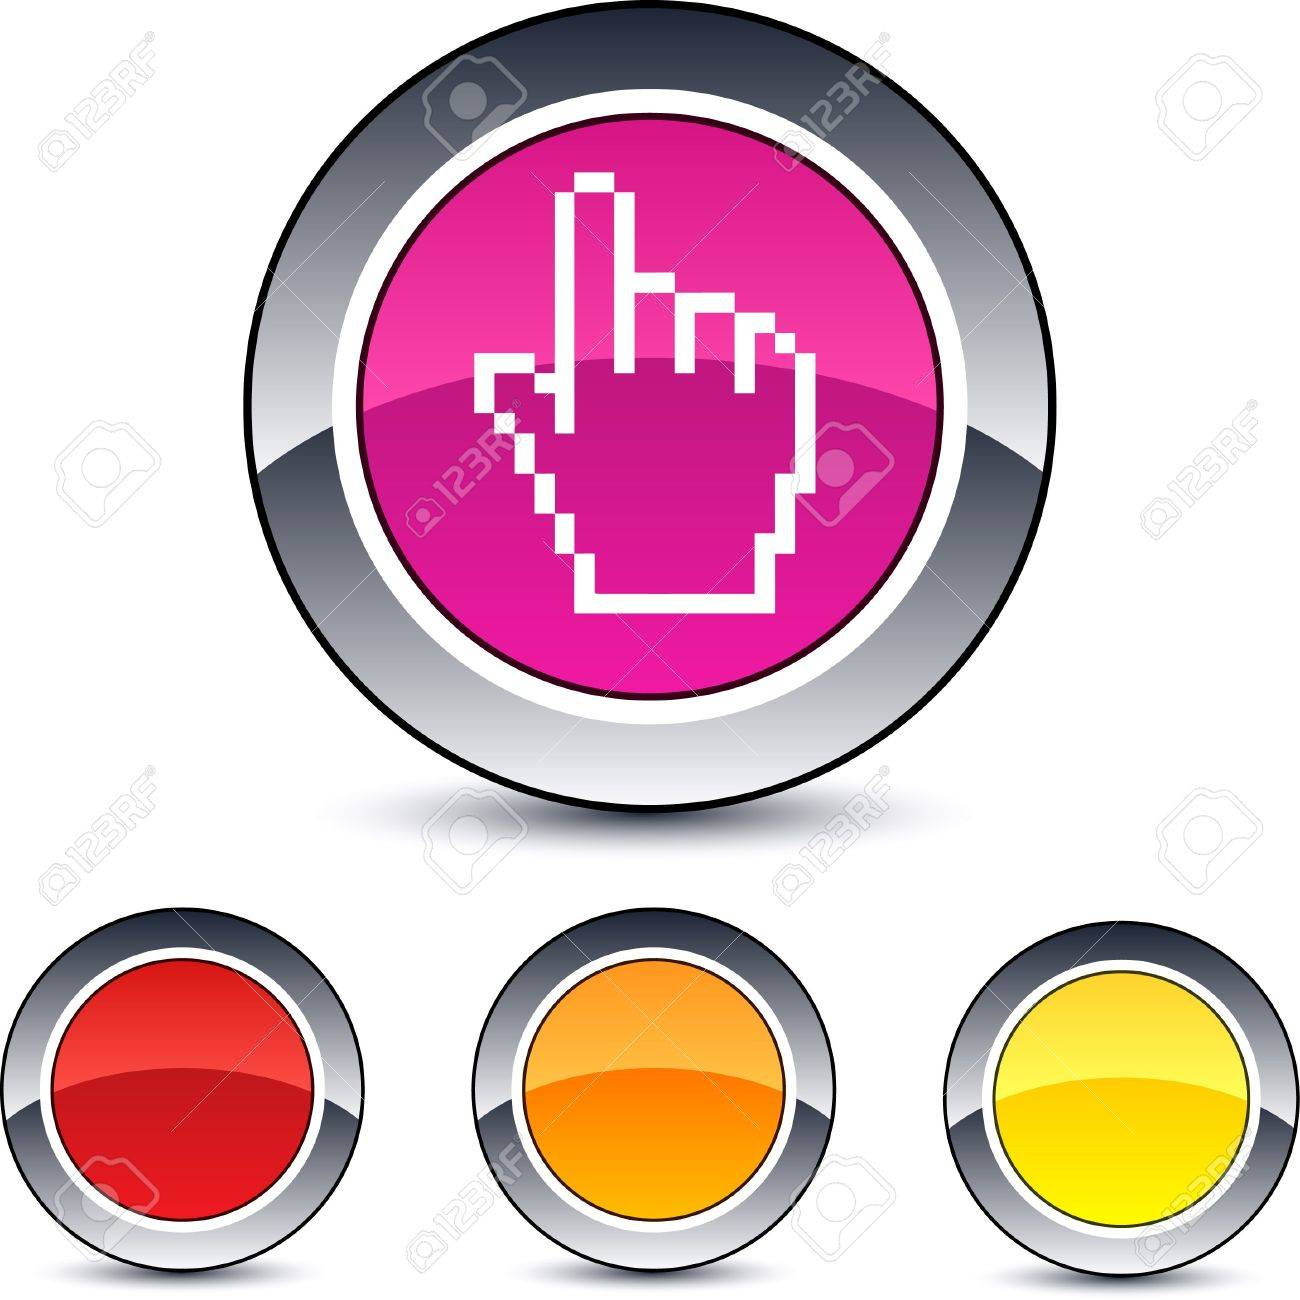 Pixel hand glossy round web buttons. Stock Vector - 7099053